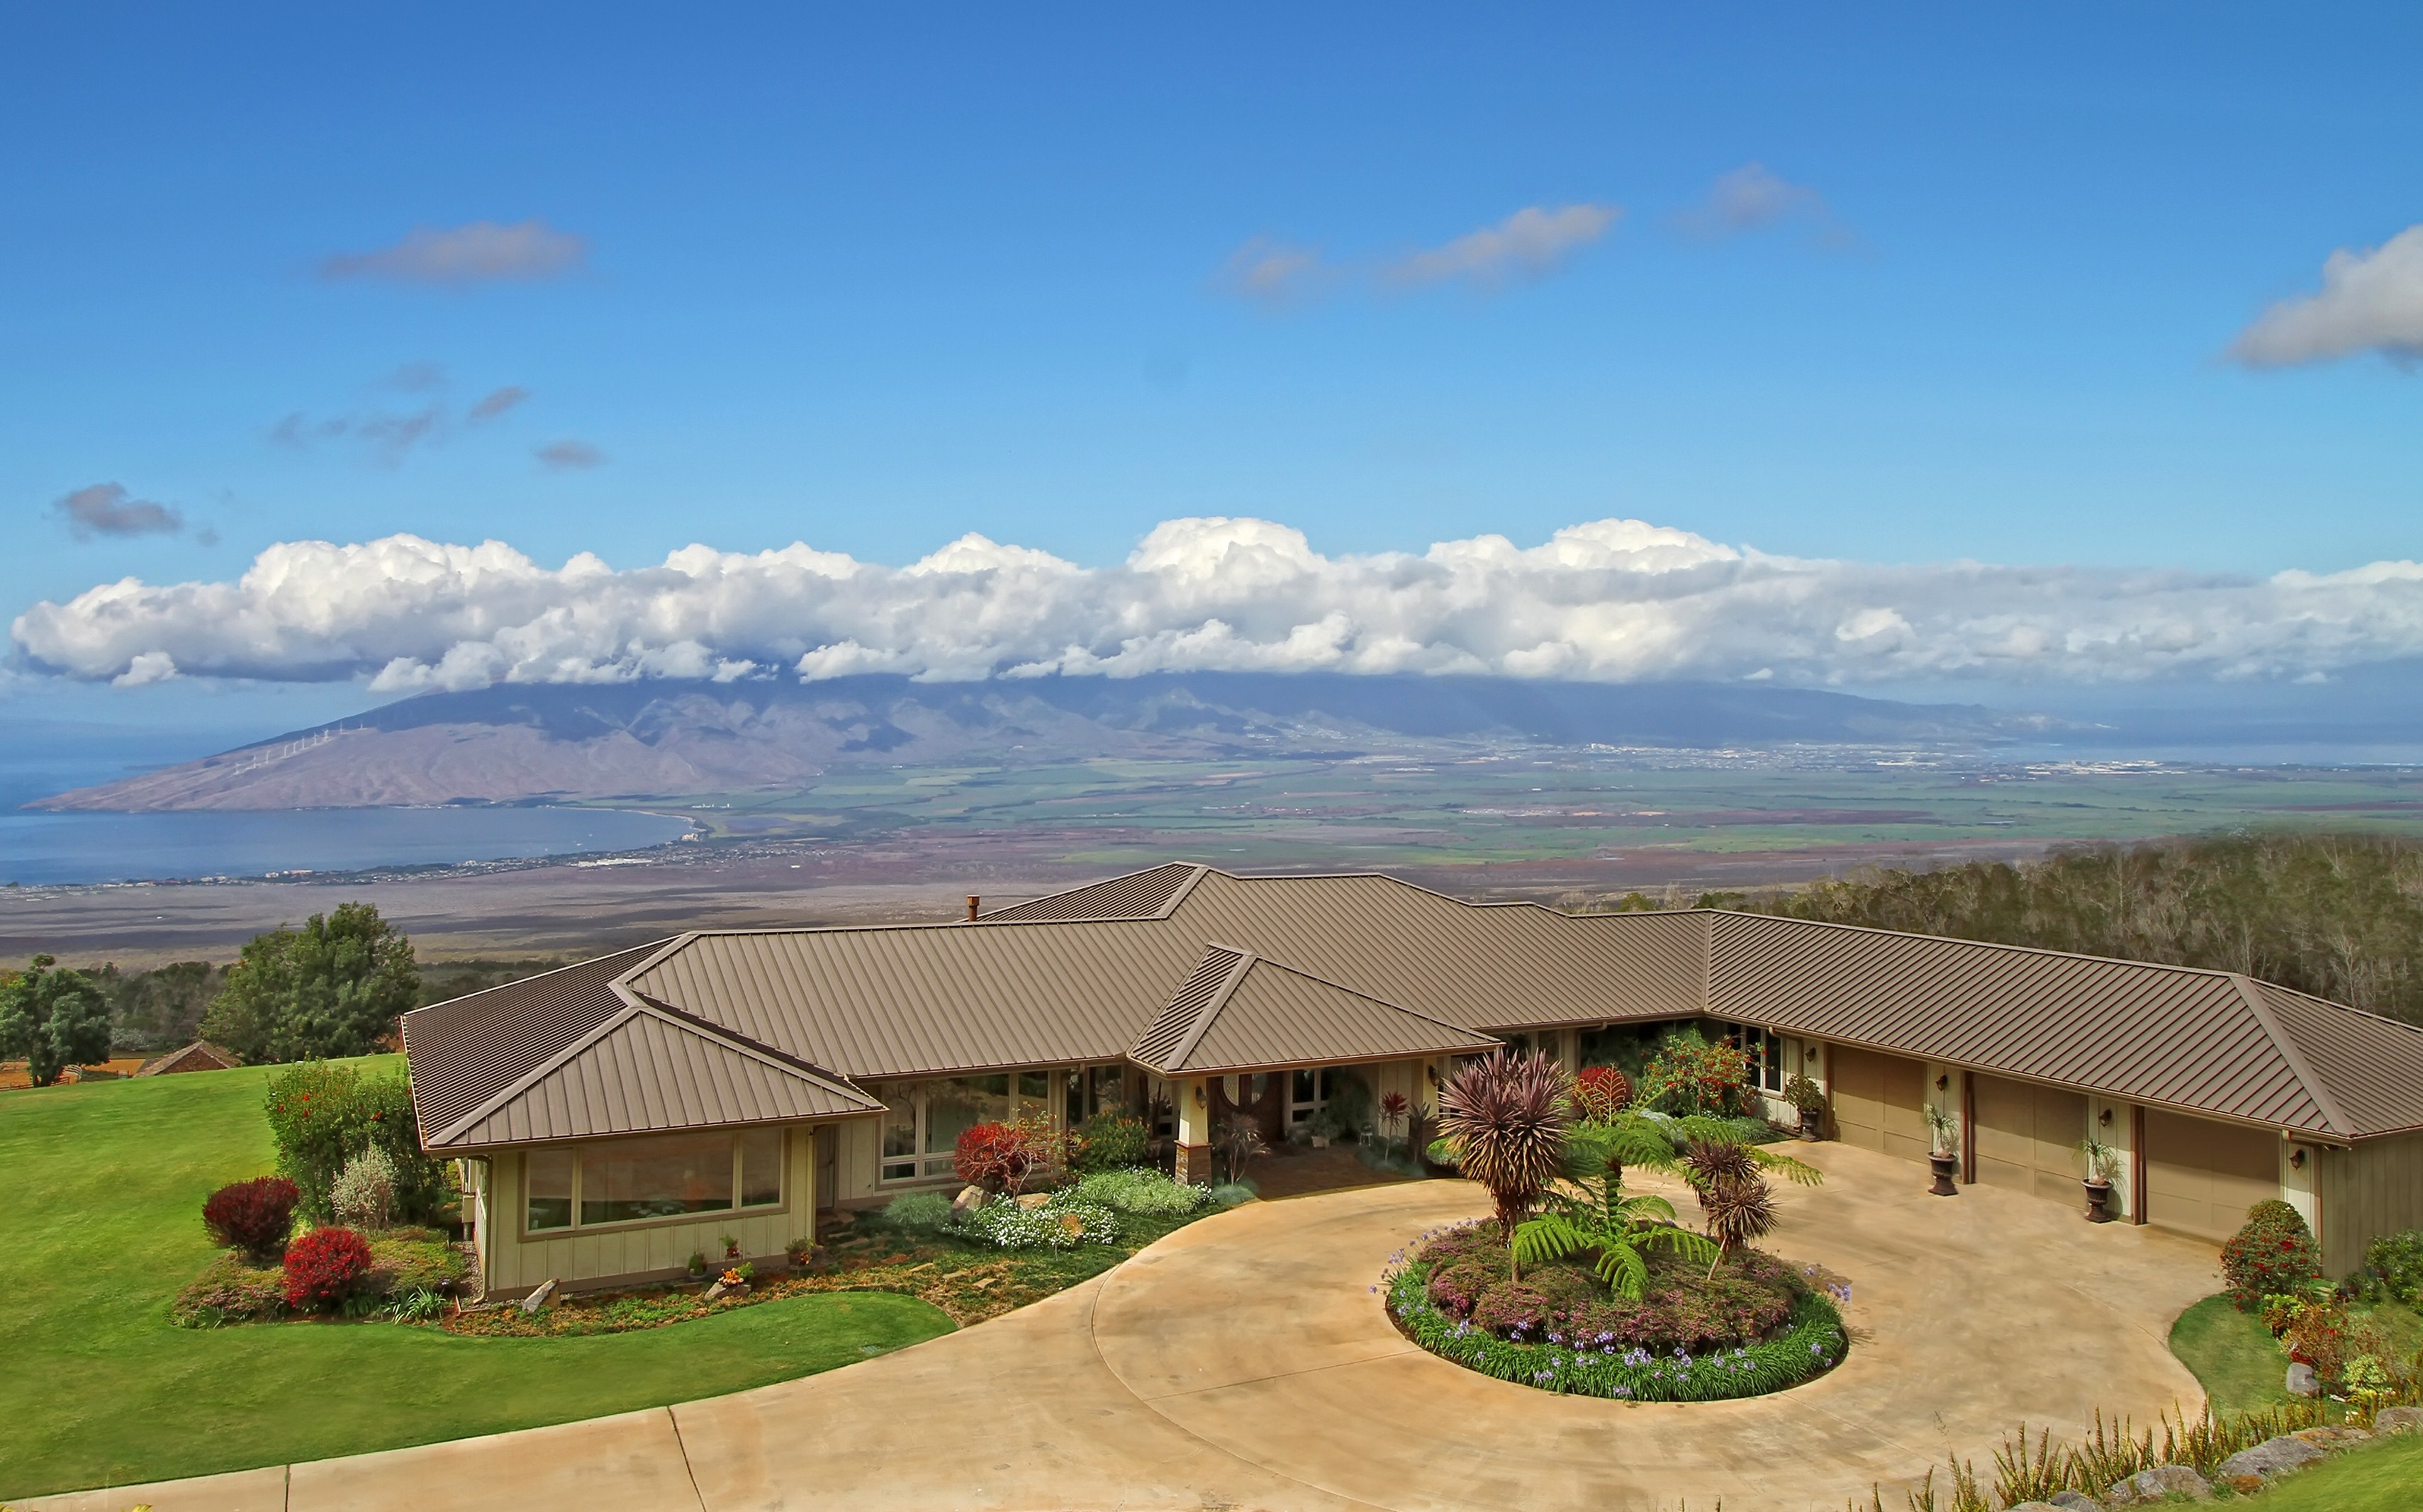 Property For Sale at Exclusive 15-Acre Kula, Maui Estate With Unbelieveable Bi-Coastal Views